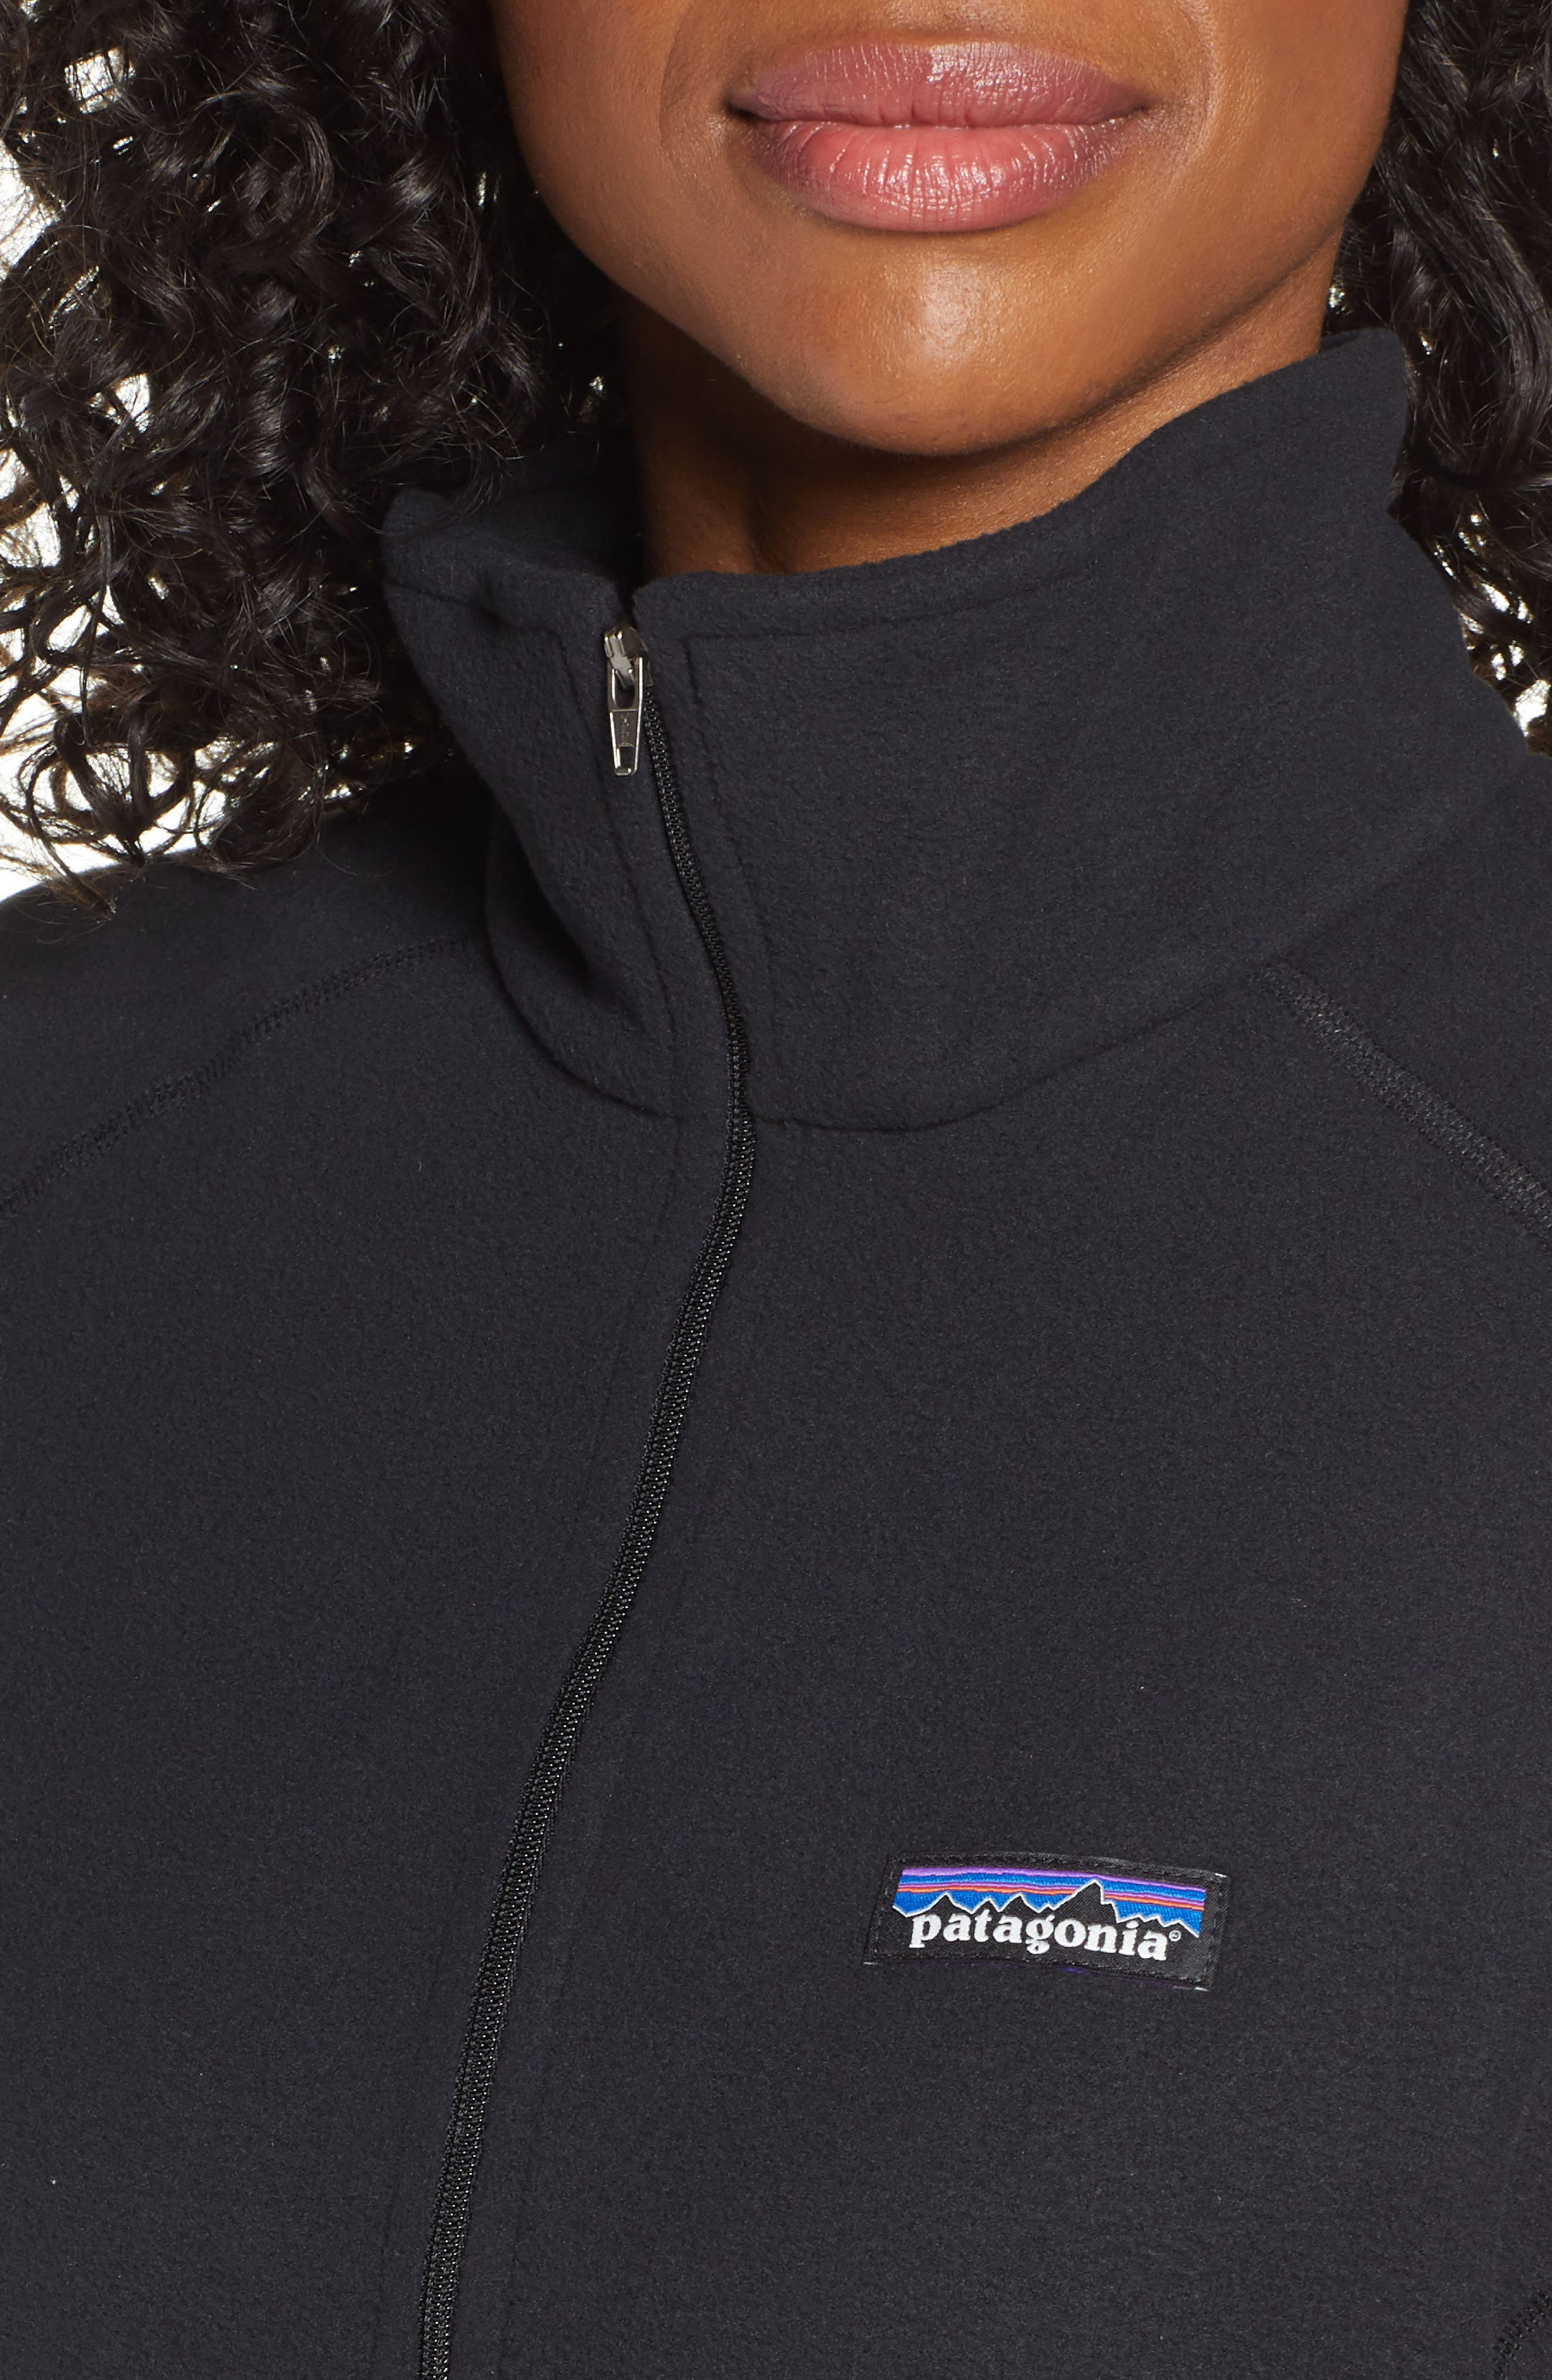 PATAGONIA, Micro D<sup>®</sup> Quarter-Zip Fleece Pullover, Alternate thumbnail 5, color, BLACK